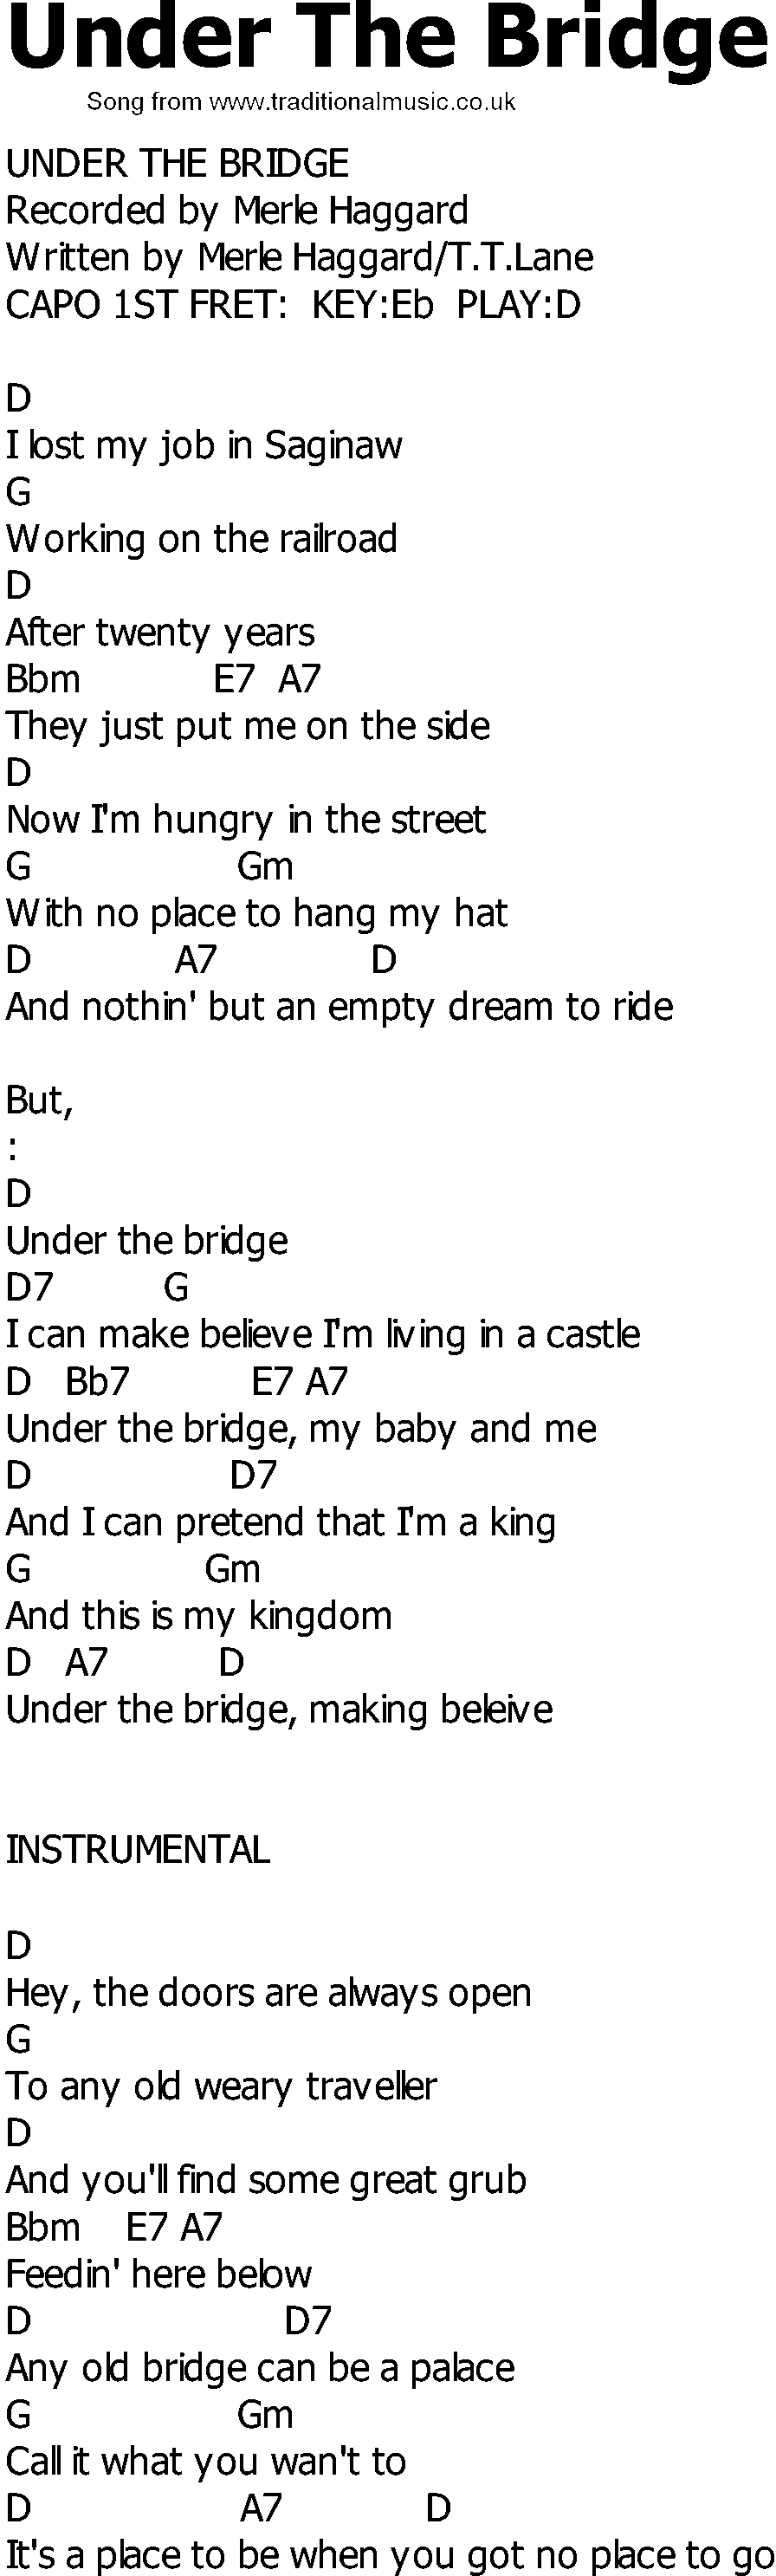 Under The Bridge Chords Old Country Song Lyrics With Chords Under The Bridge